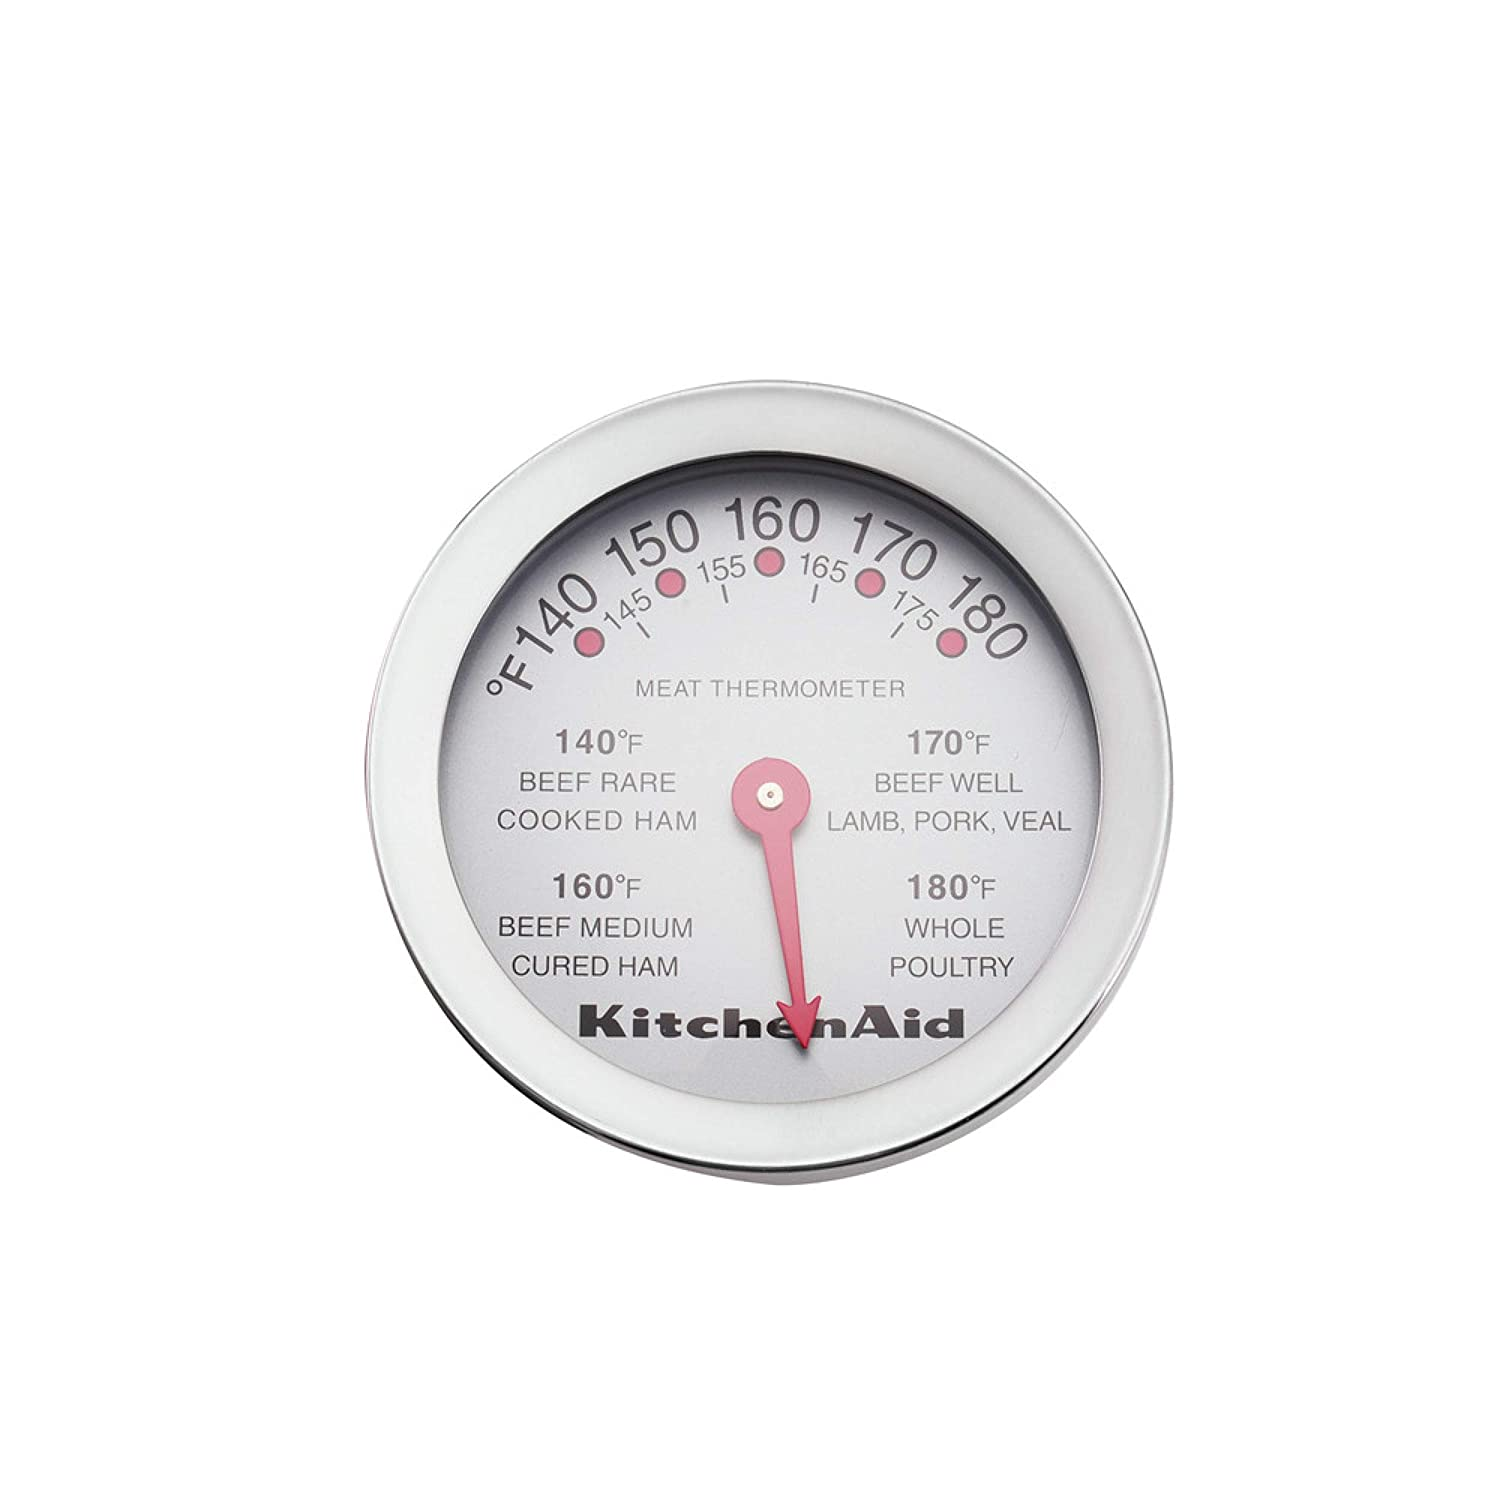 KitchenAid KO122OHSSA Gourmet Meat Thermometer 4-Inch Stainless Steel